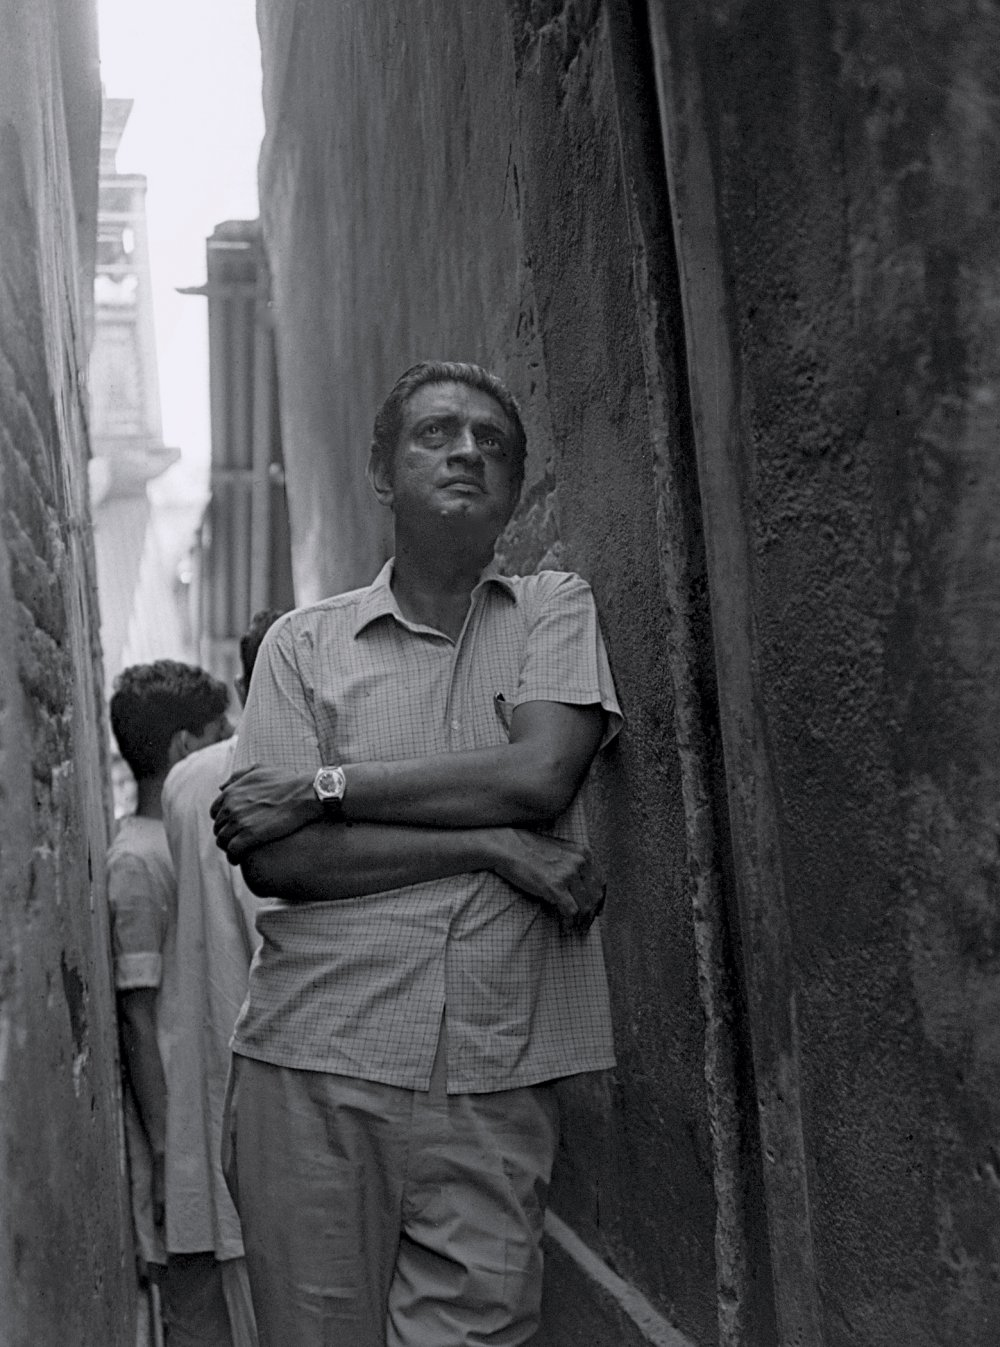 Satyajit Ray photographed by Nemai Ghosh on set of The Adversary (1970)